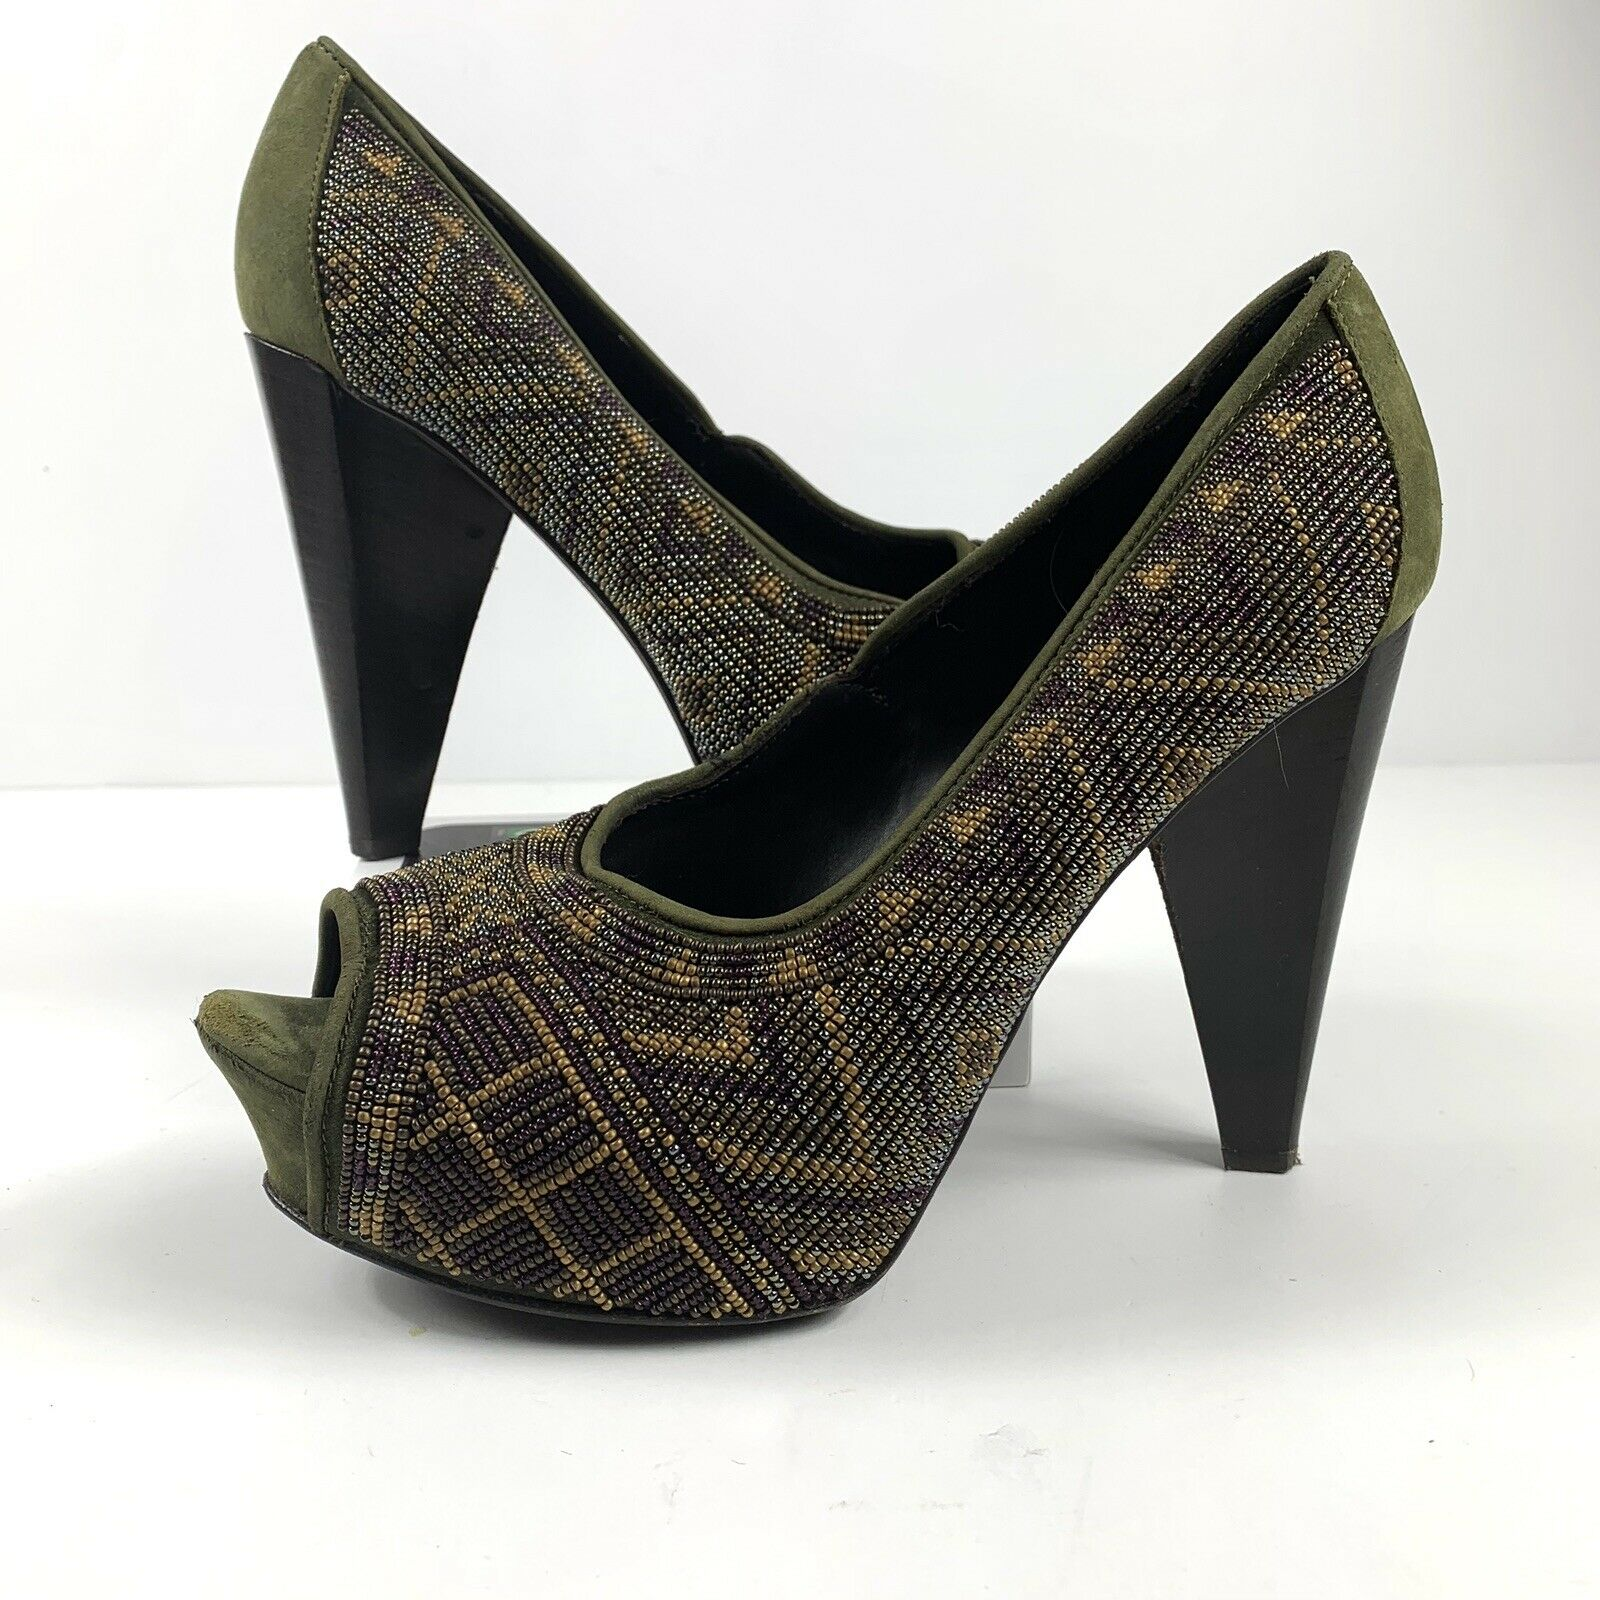 DONALD J PLINER CECI Green Brown TRIBAL AZTEC Peep Toe Heels 6.5M Beaded